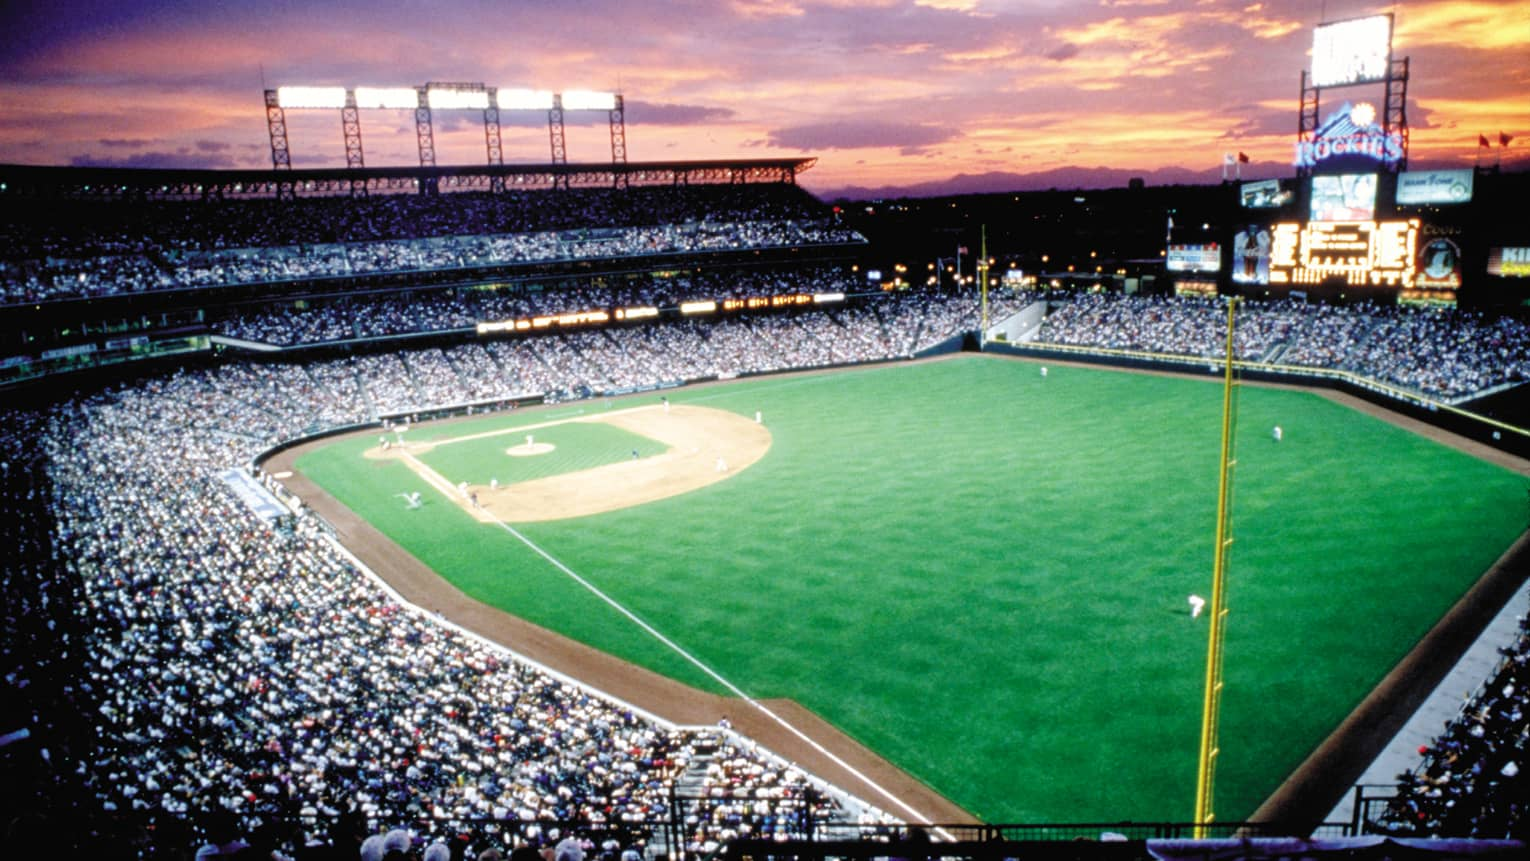 Aerial view of Coors Field sports stadium at sunset, crowds in stands